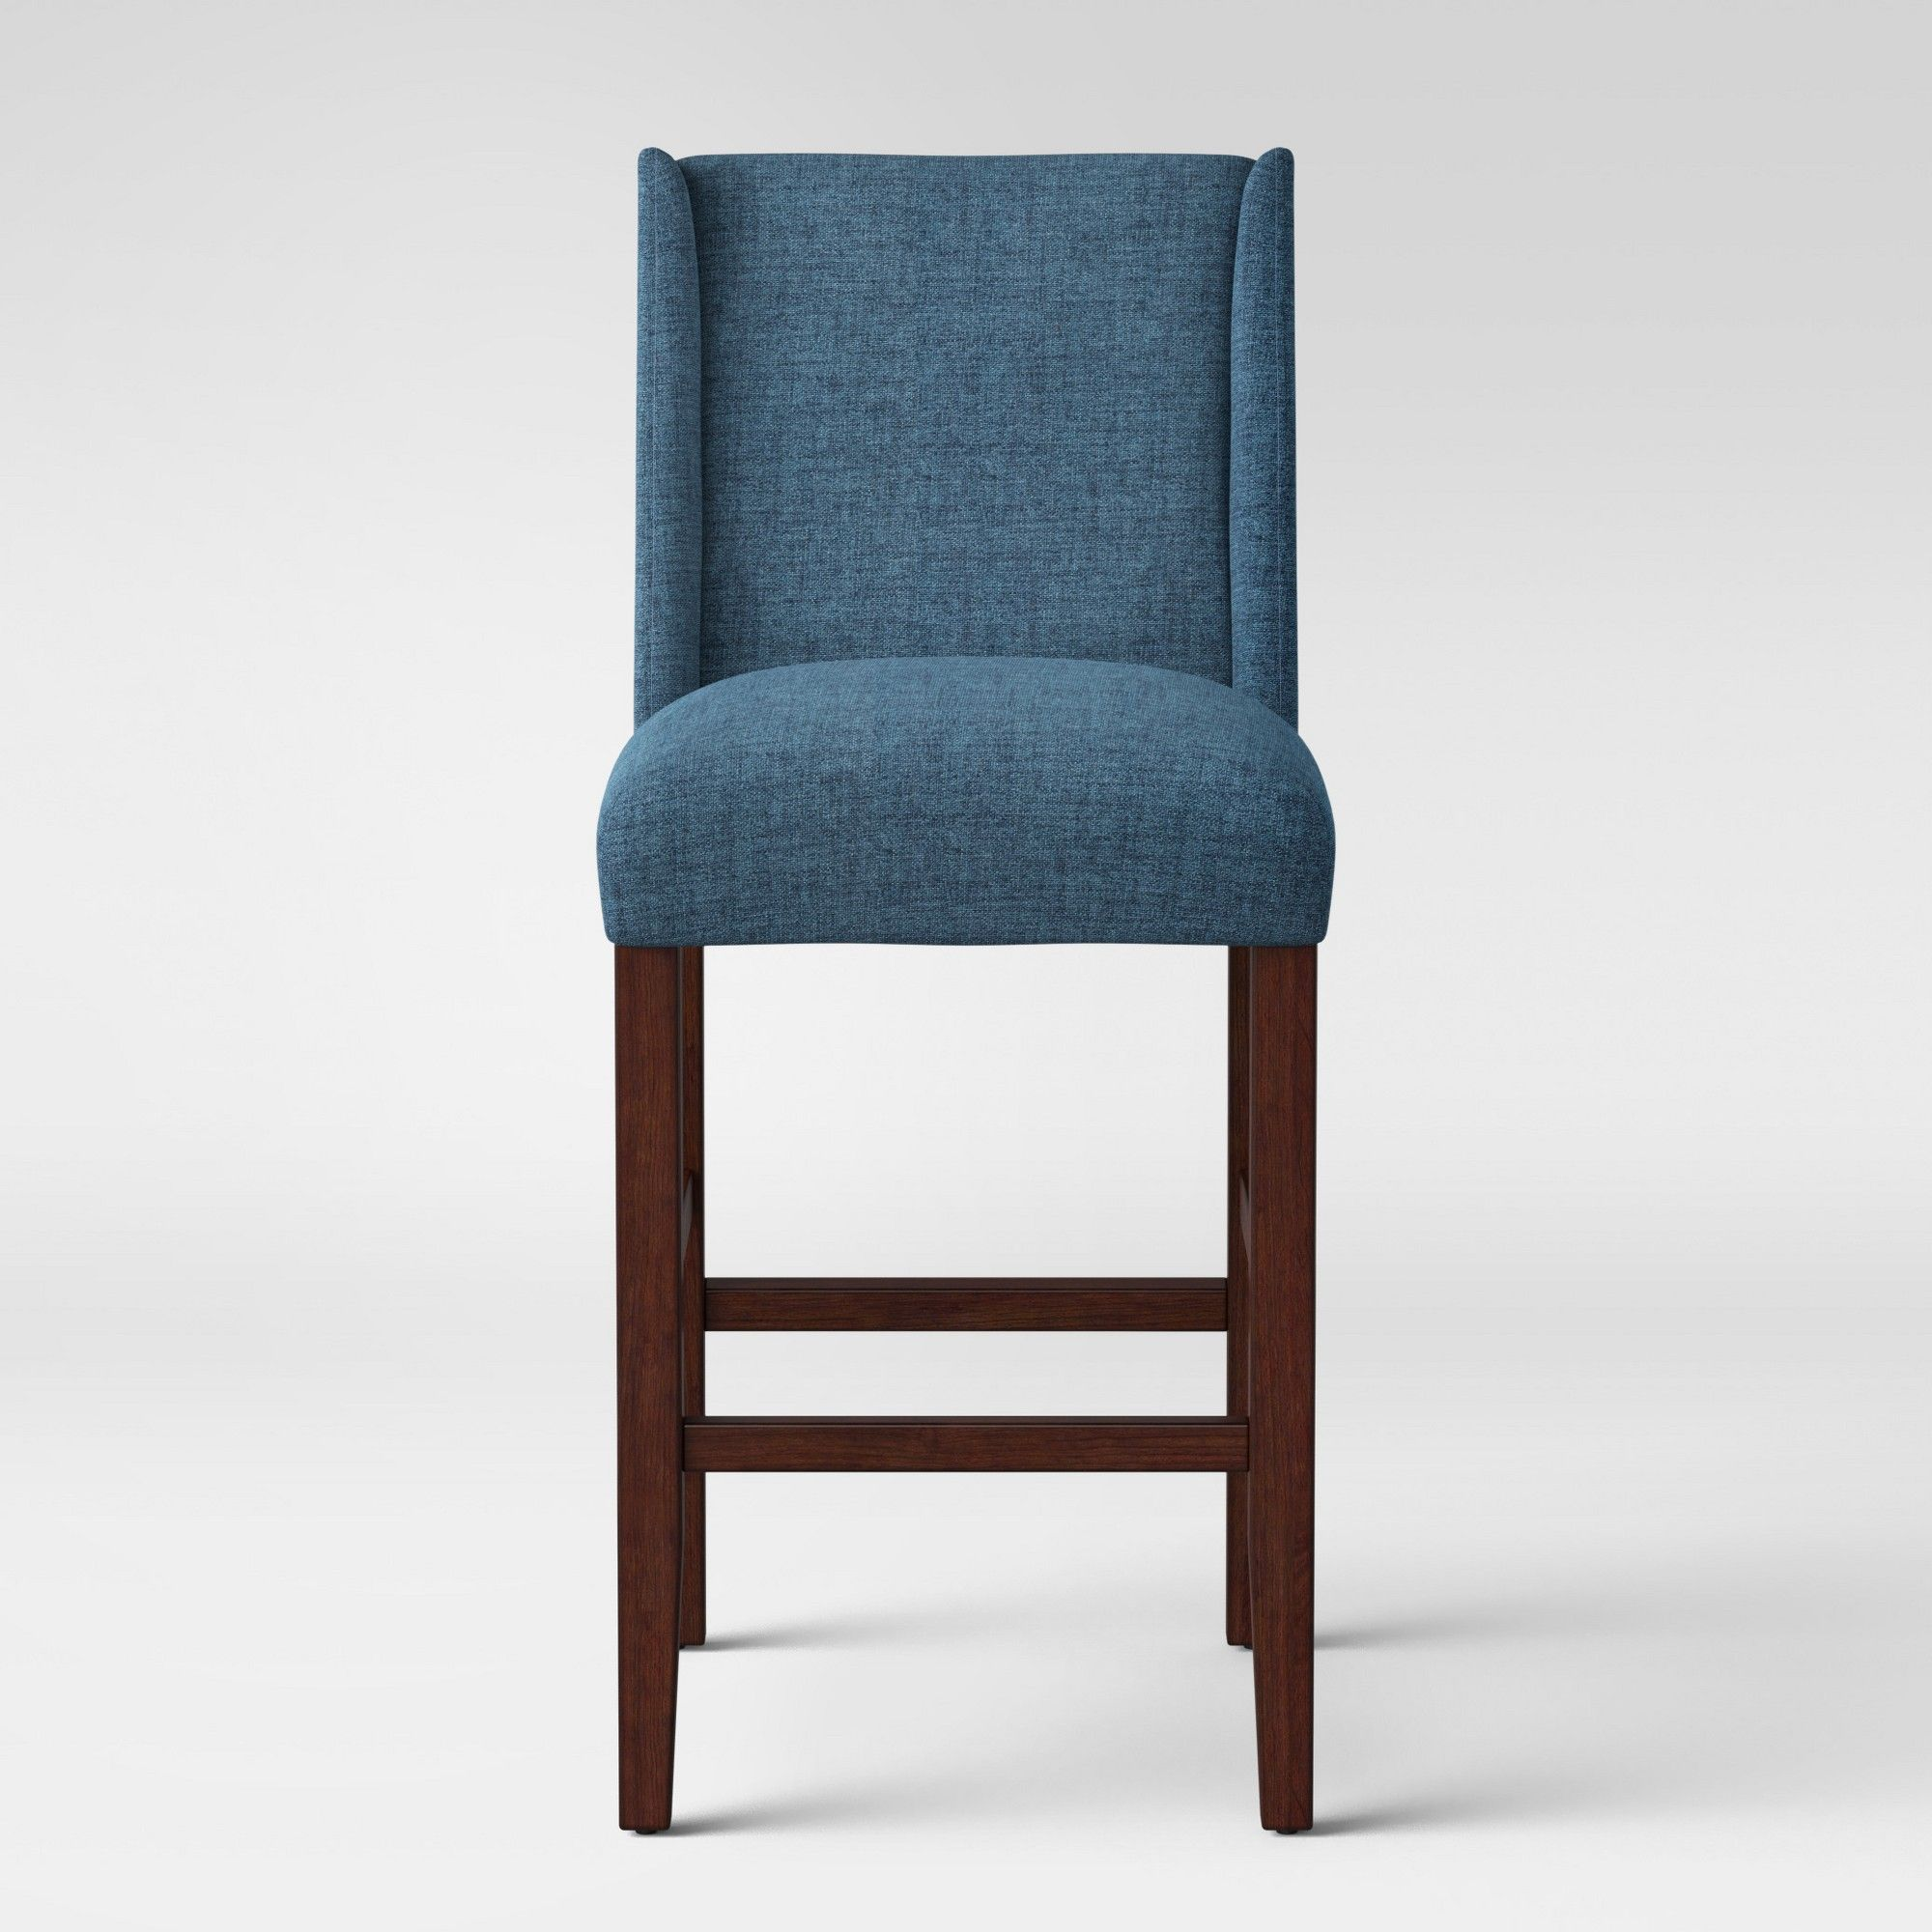 Admirable Lowell Modified Wingback 29 Barstool Navy Blue Threshold Andrewgaddart Wooden Chair Designs For Living Room Andrewgaddartcom